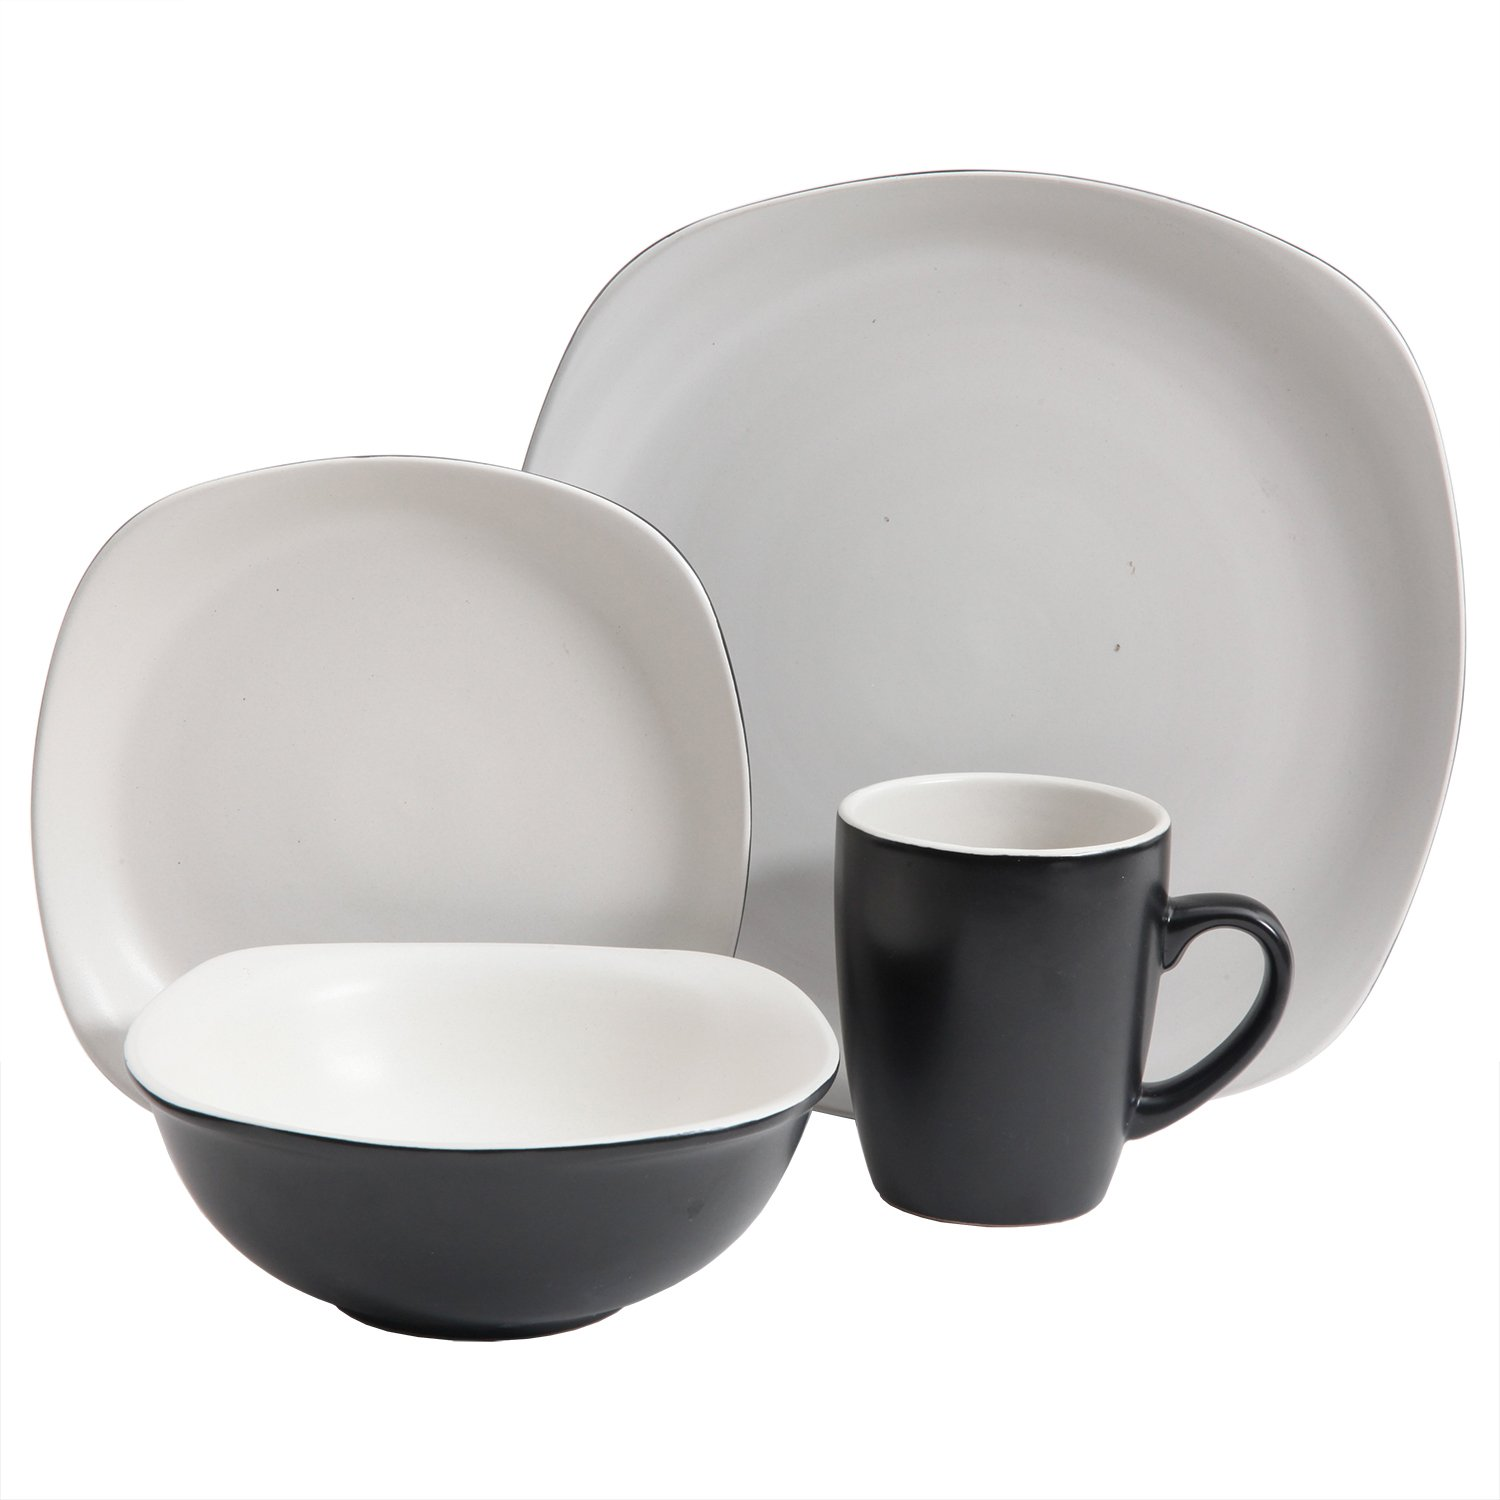 Gibson Home 114384.16RM Tristen 16 Piece Dinnerware Set, Black and White